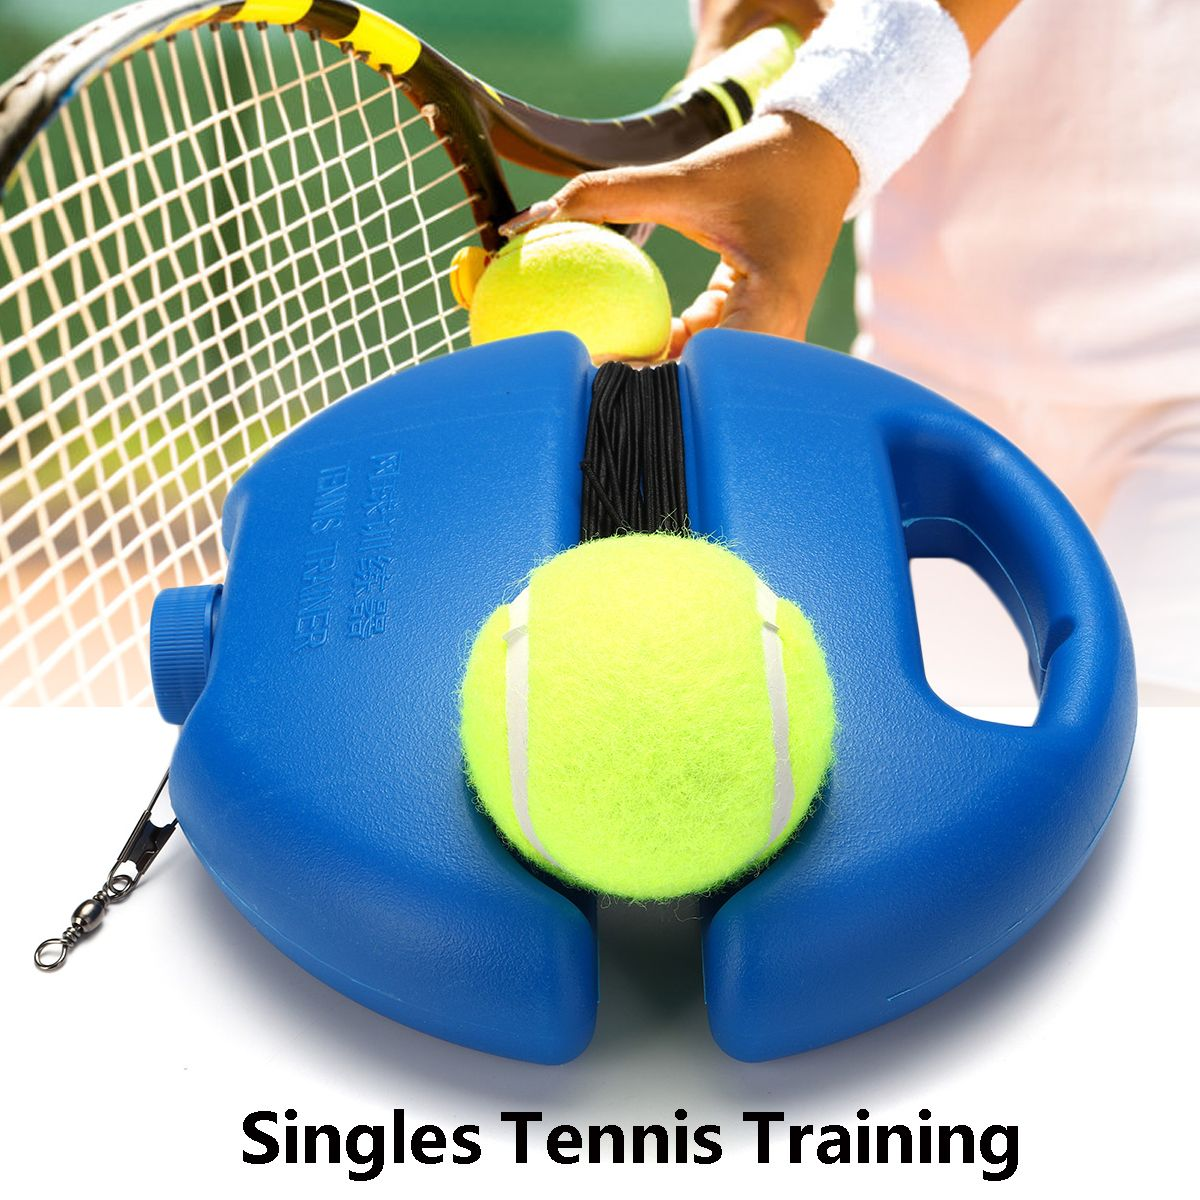 Singles Tennis Balls Training Practice Tool Balls Back Base Trainer Single  Line Tennis Racket Tool Outdoor for Beginner Self-study, with Ball -  Walmart.com in 2020   Tennis, Tennis trainer, Tennis balls